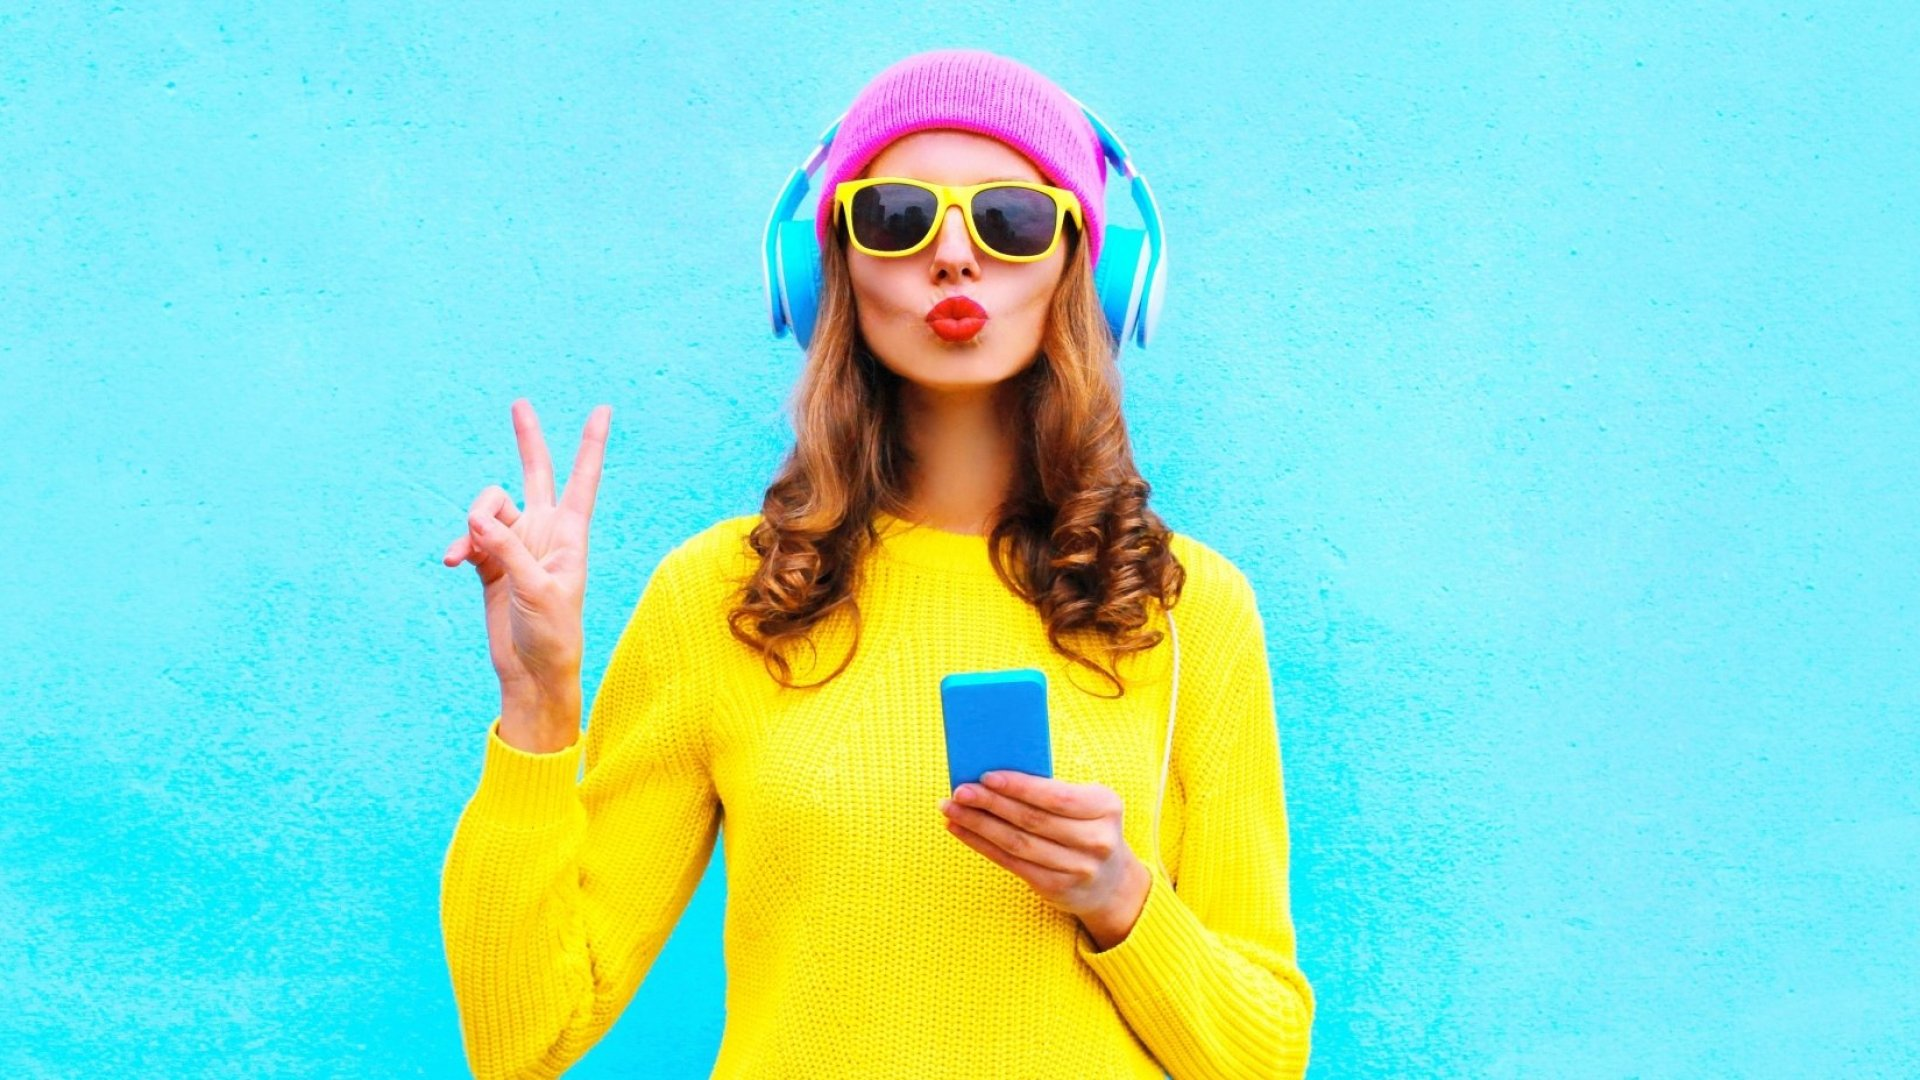 Social Media Obsession Worries Teenagers, Study Finds